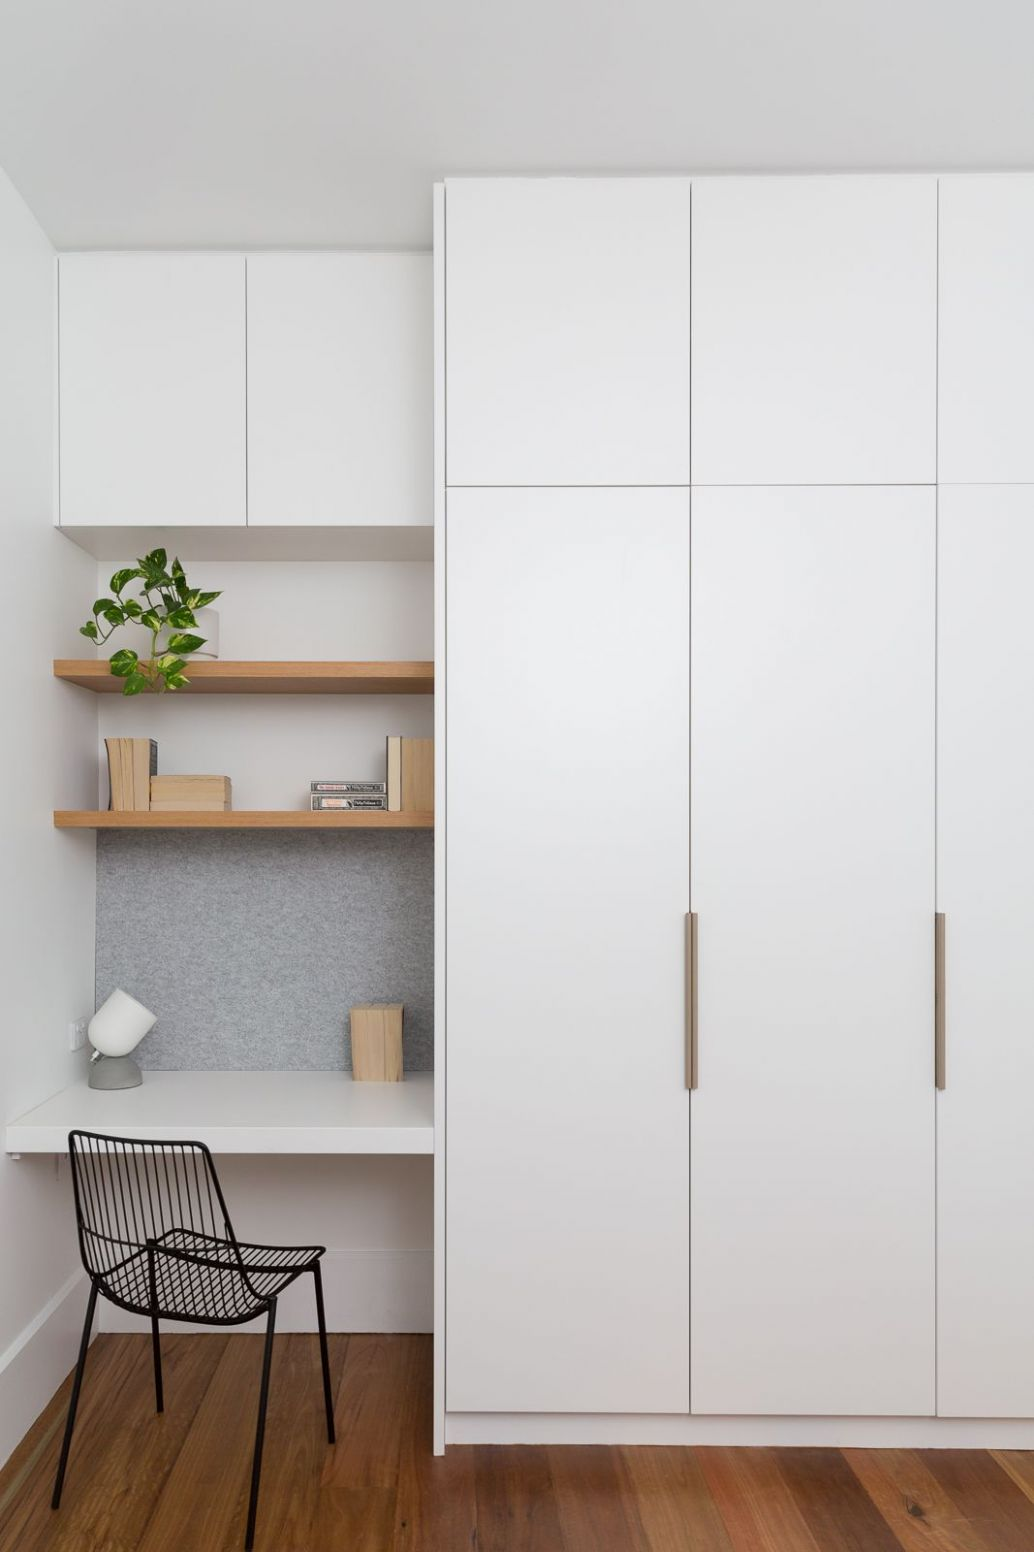 joinery (With images) | Modern apartment decor, Minimalist ..